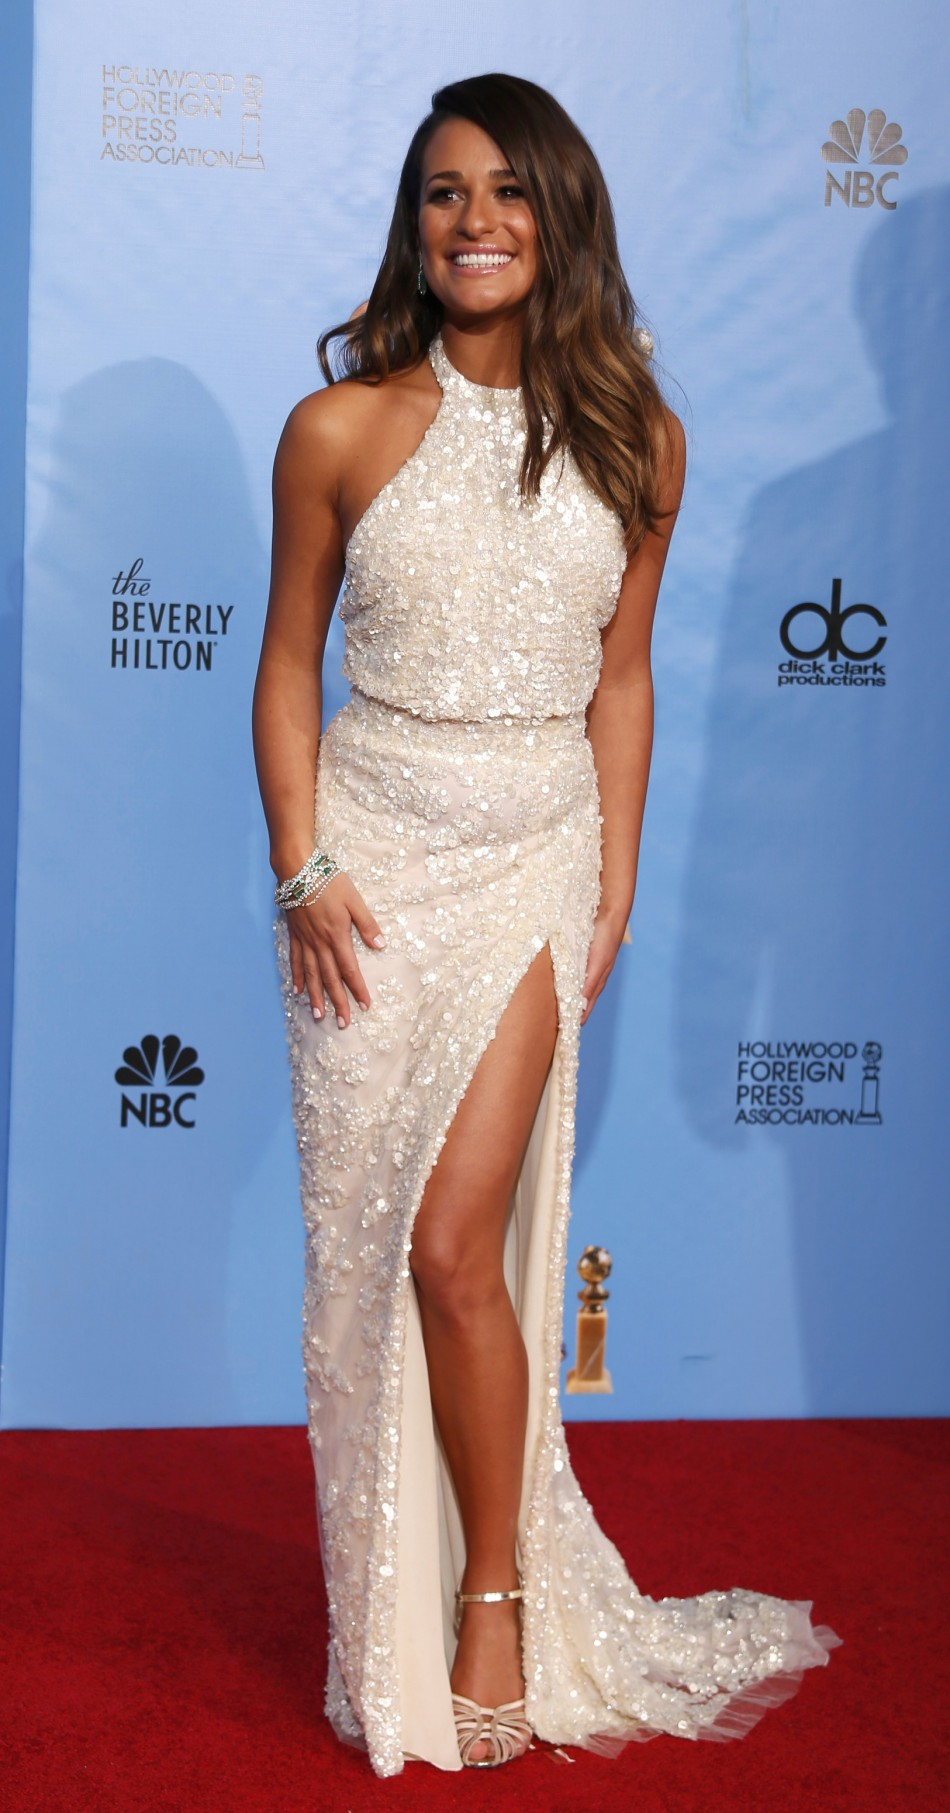 Presenter Lea Michell poses backstage at the 70th annual Golden Globe Awards in Beverly Hills